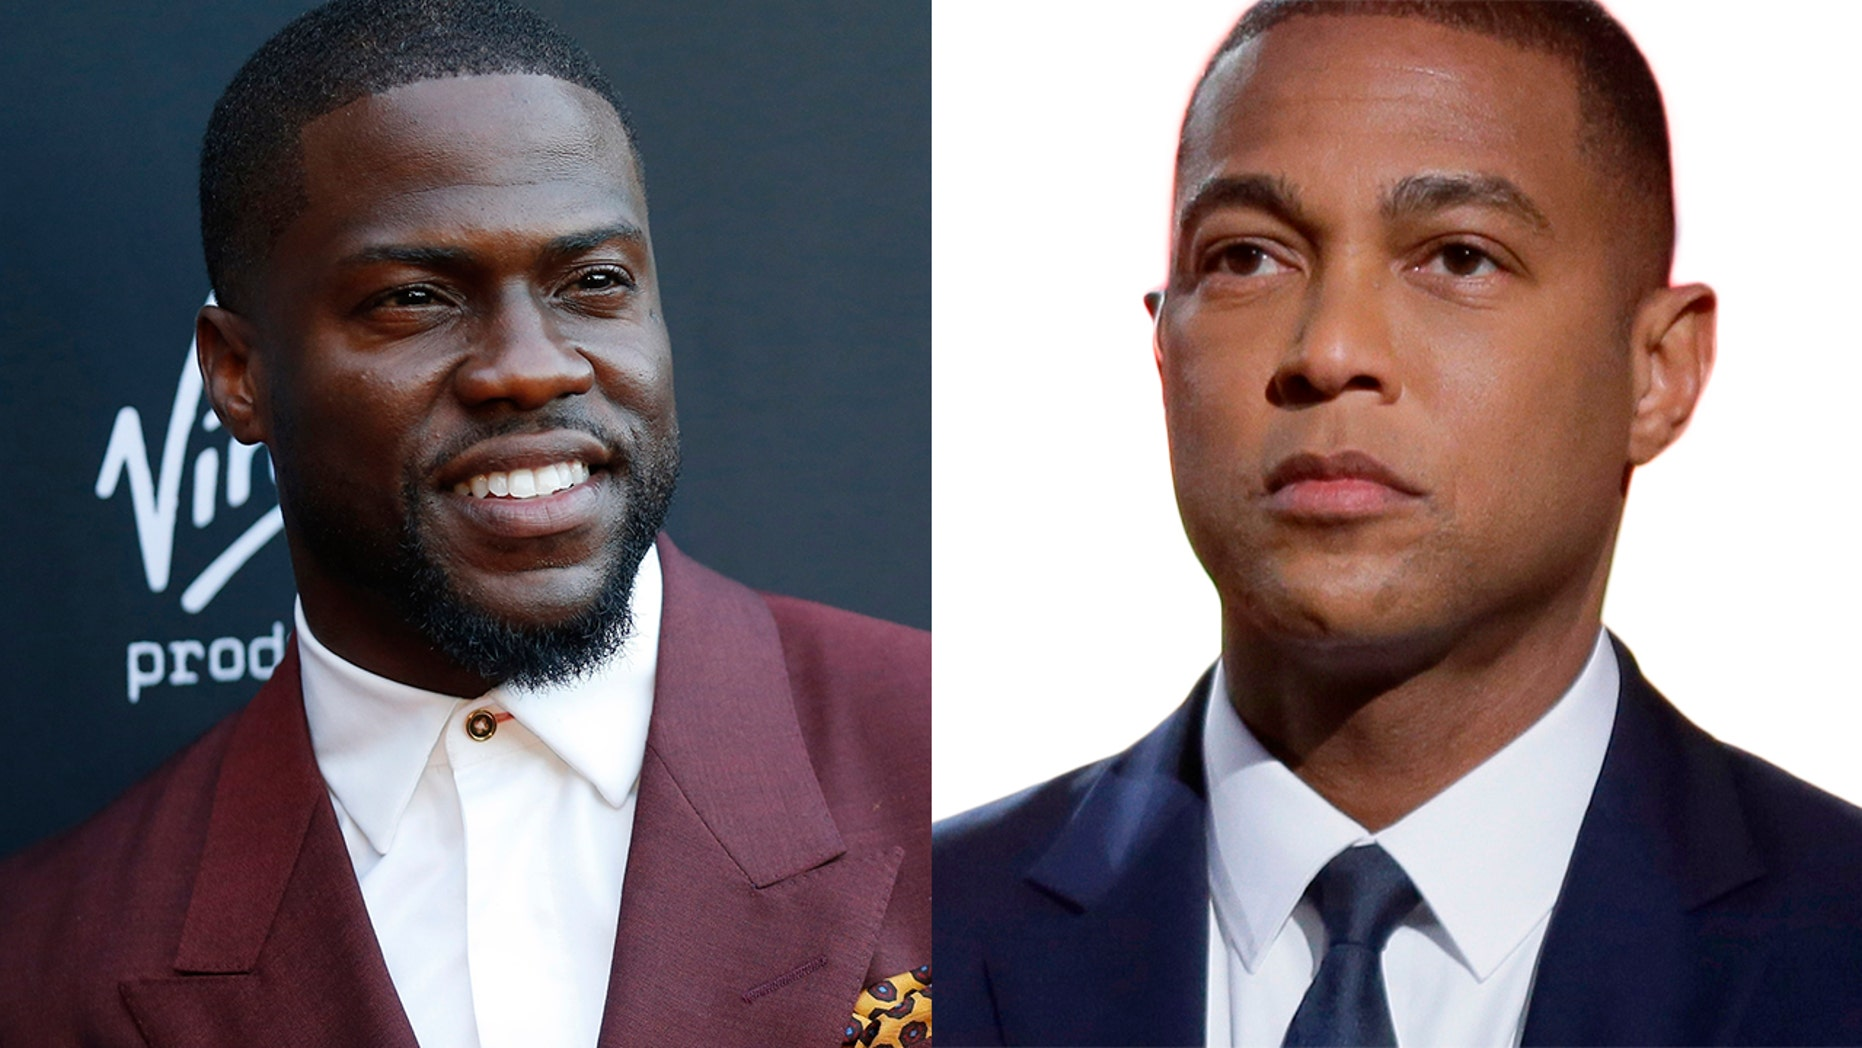 HDon Lemon, right, urged Kevin Hart, left, to be more of an ally to the LGBTQ community.